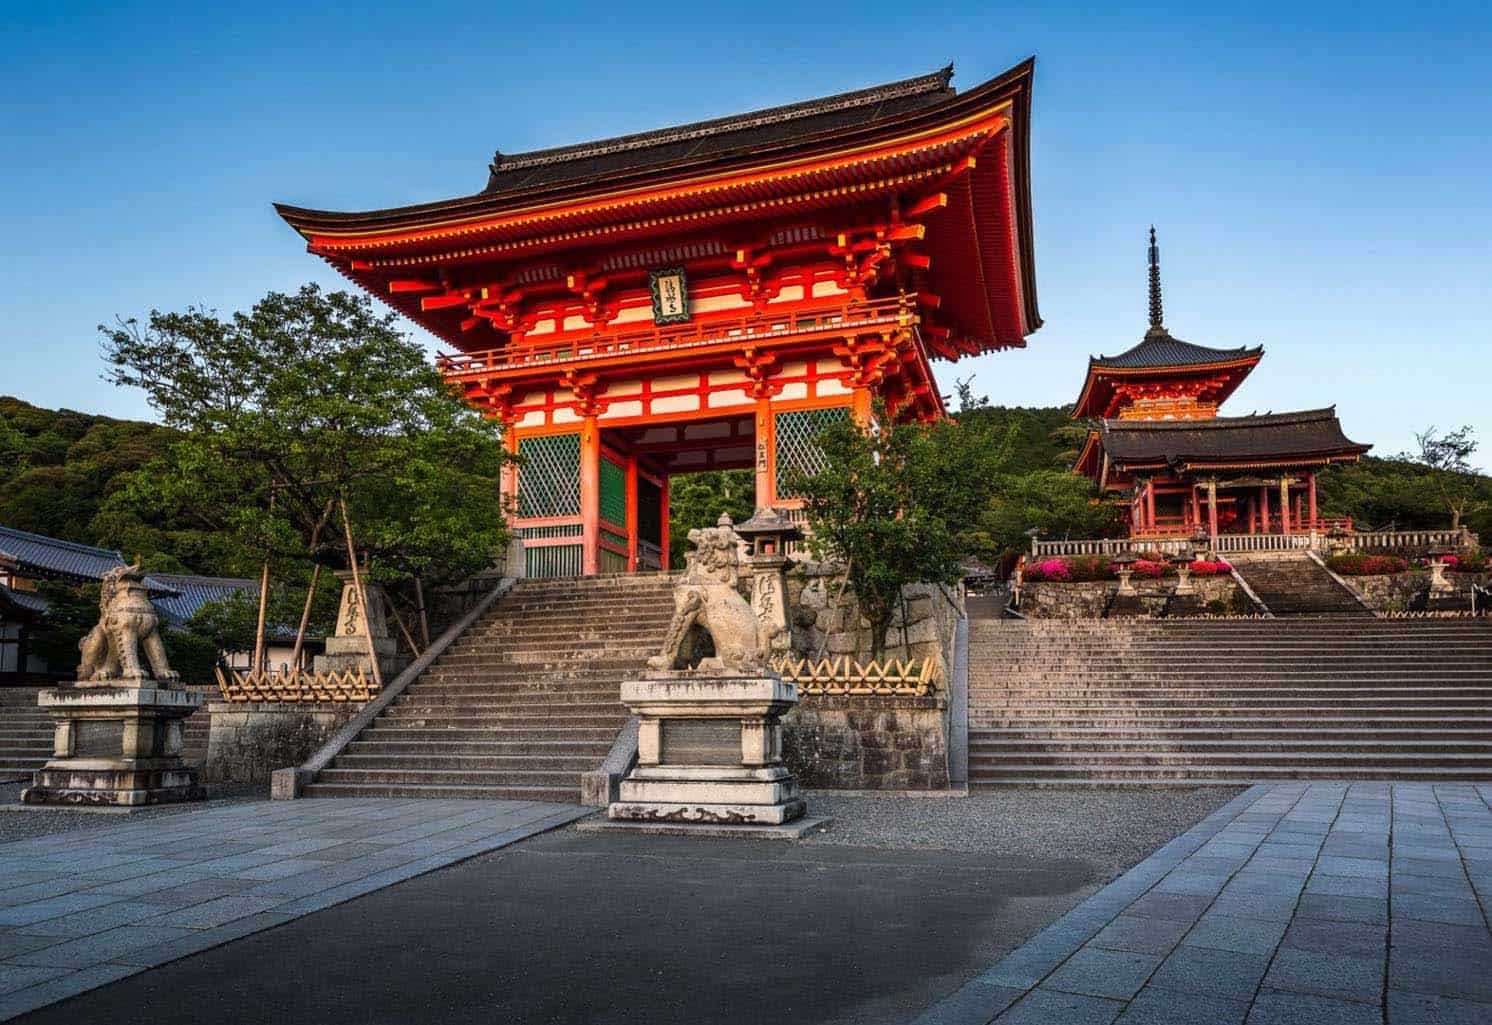 Kyoto's Temples & Shrines